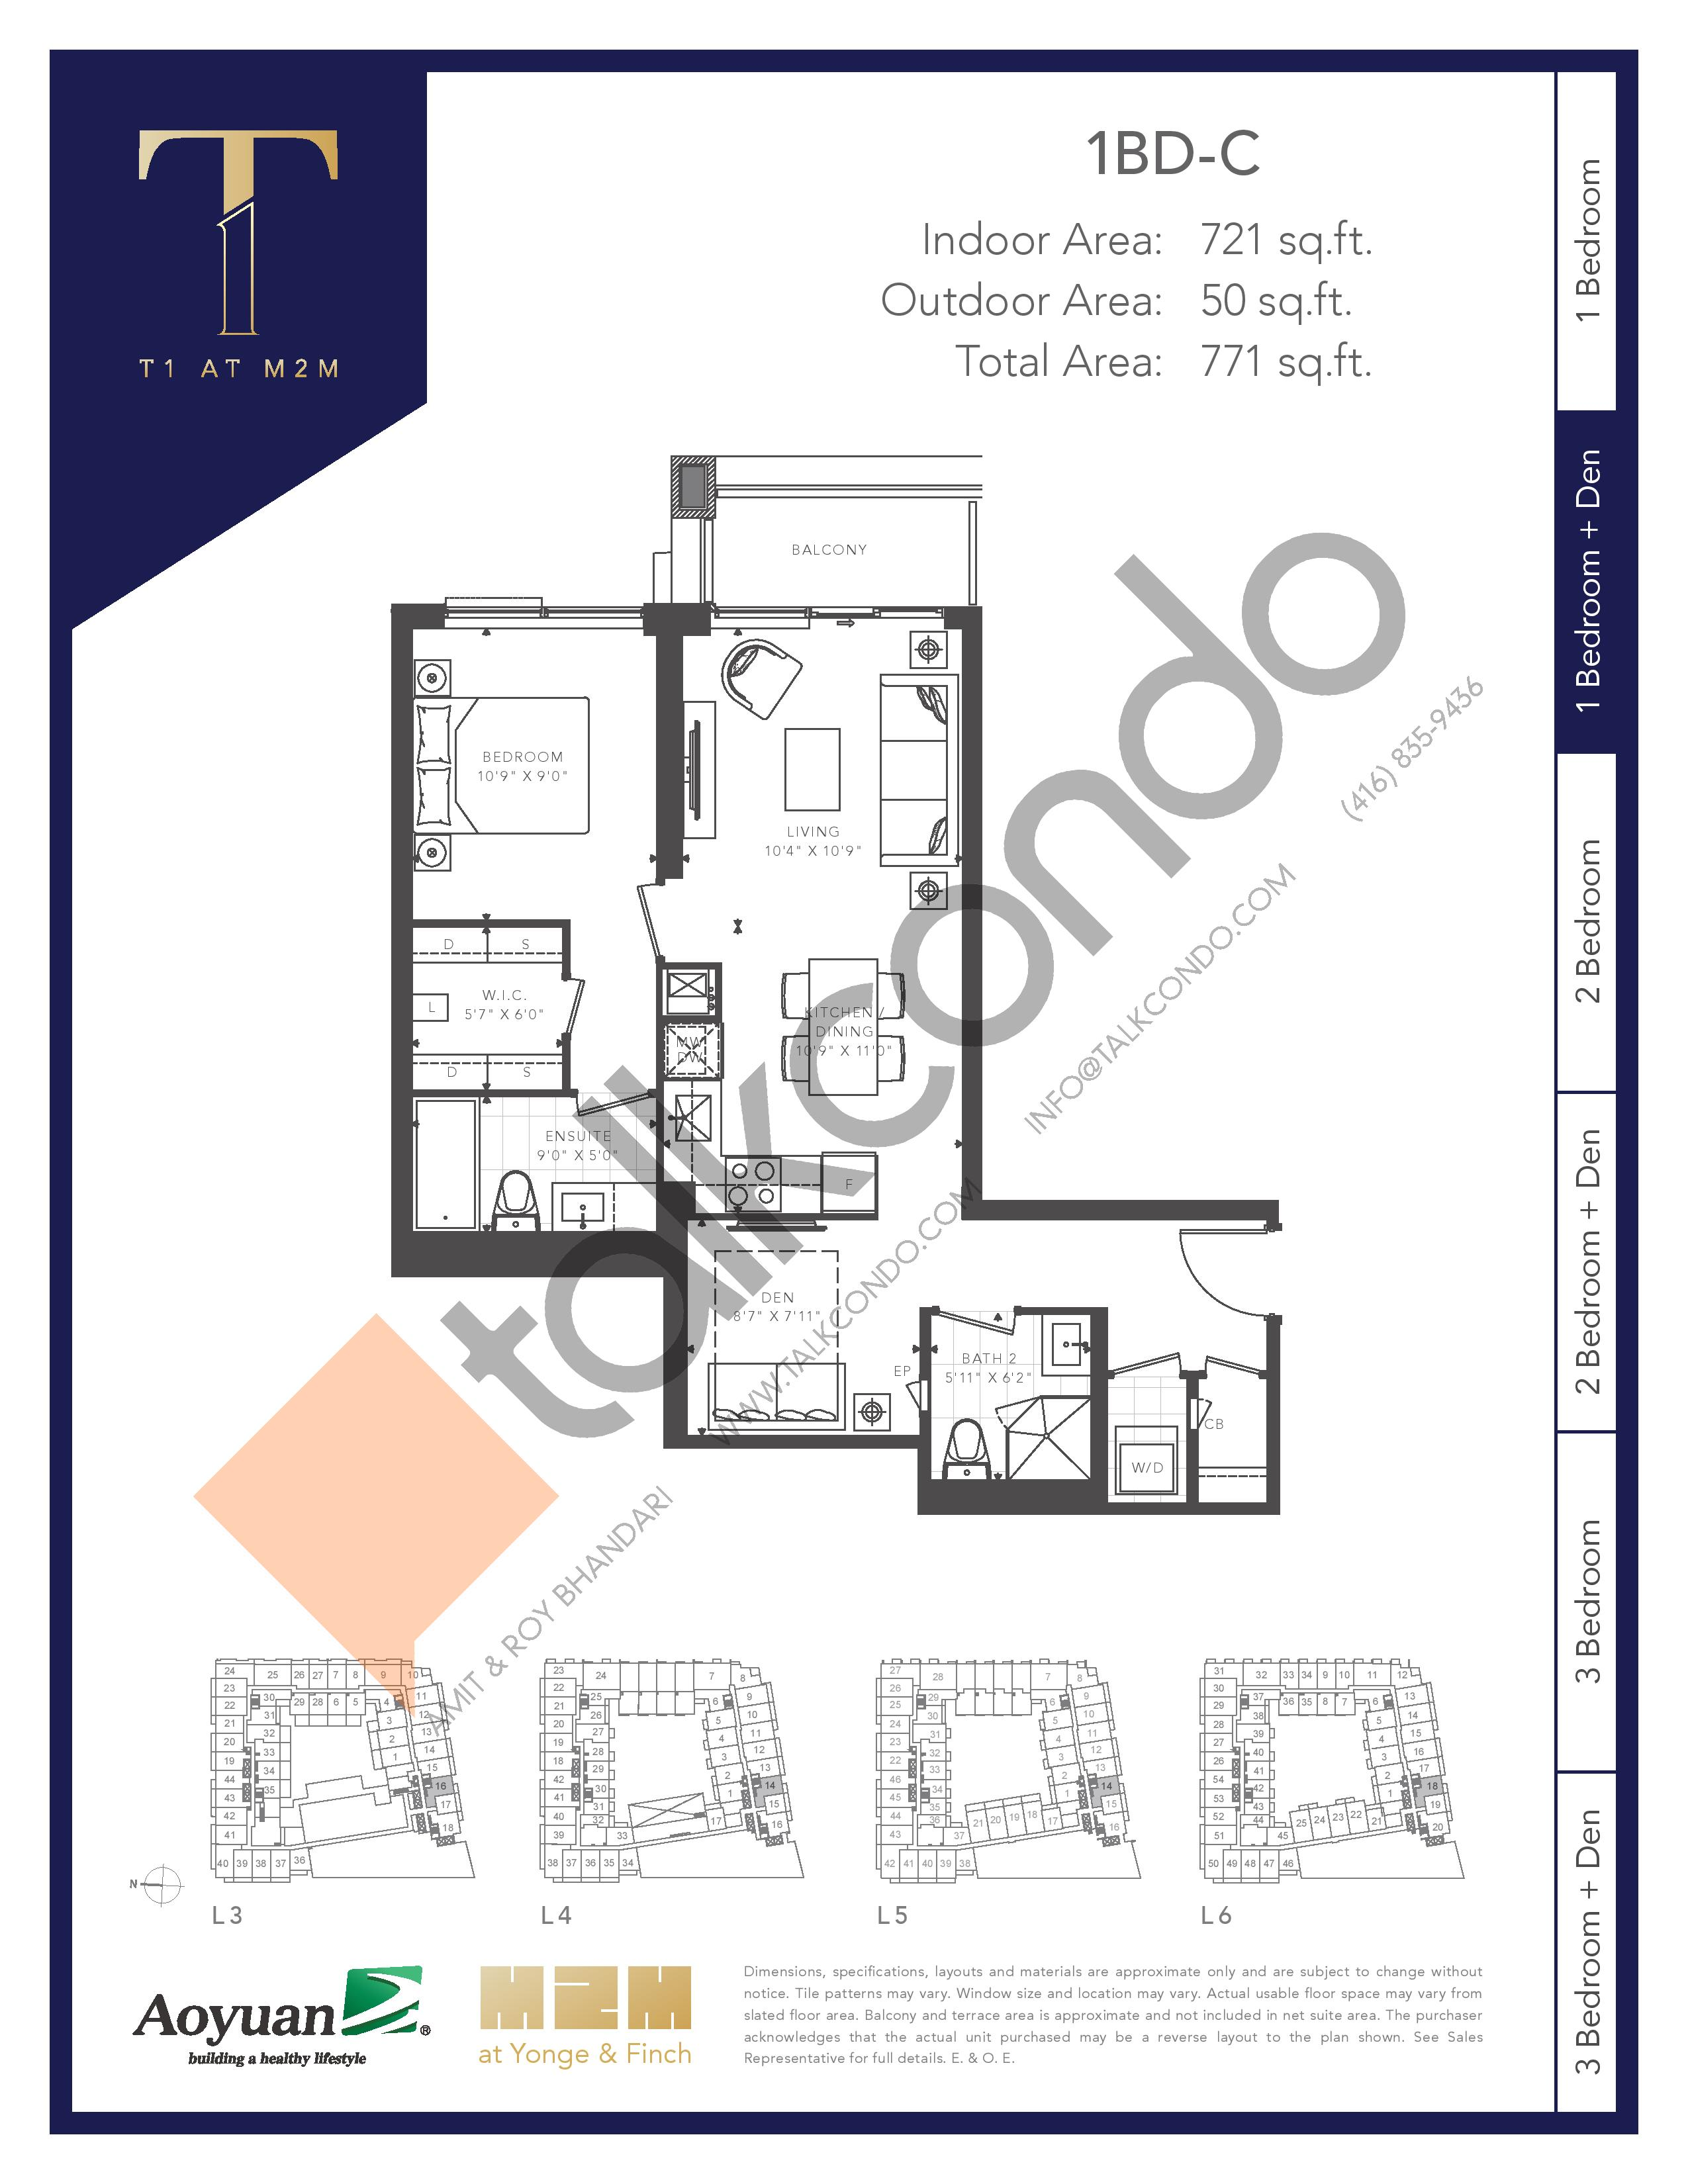 1BD-C (Tower) Floor Plan at T1 at M2M Condos - 721 sq.ft